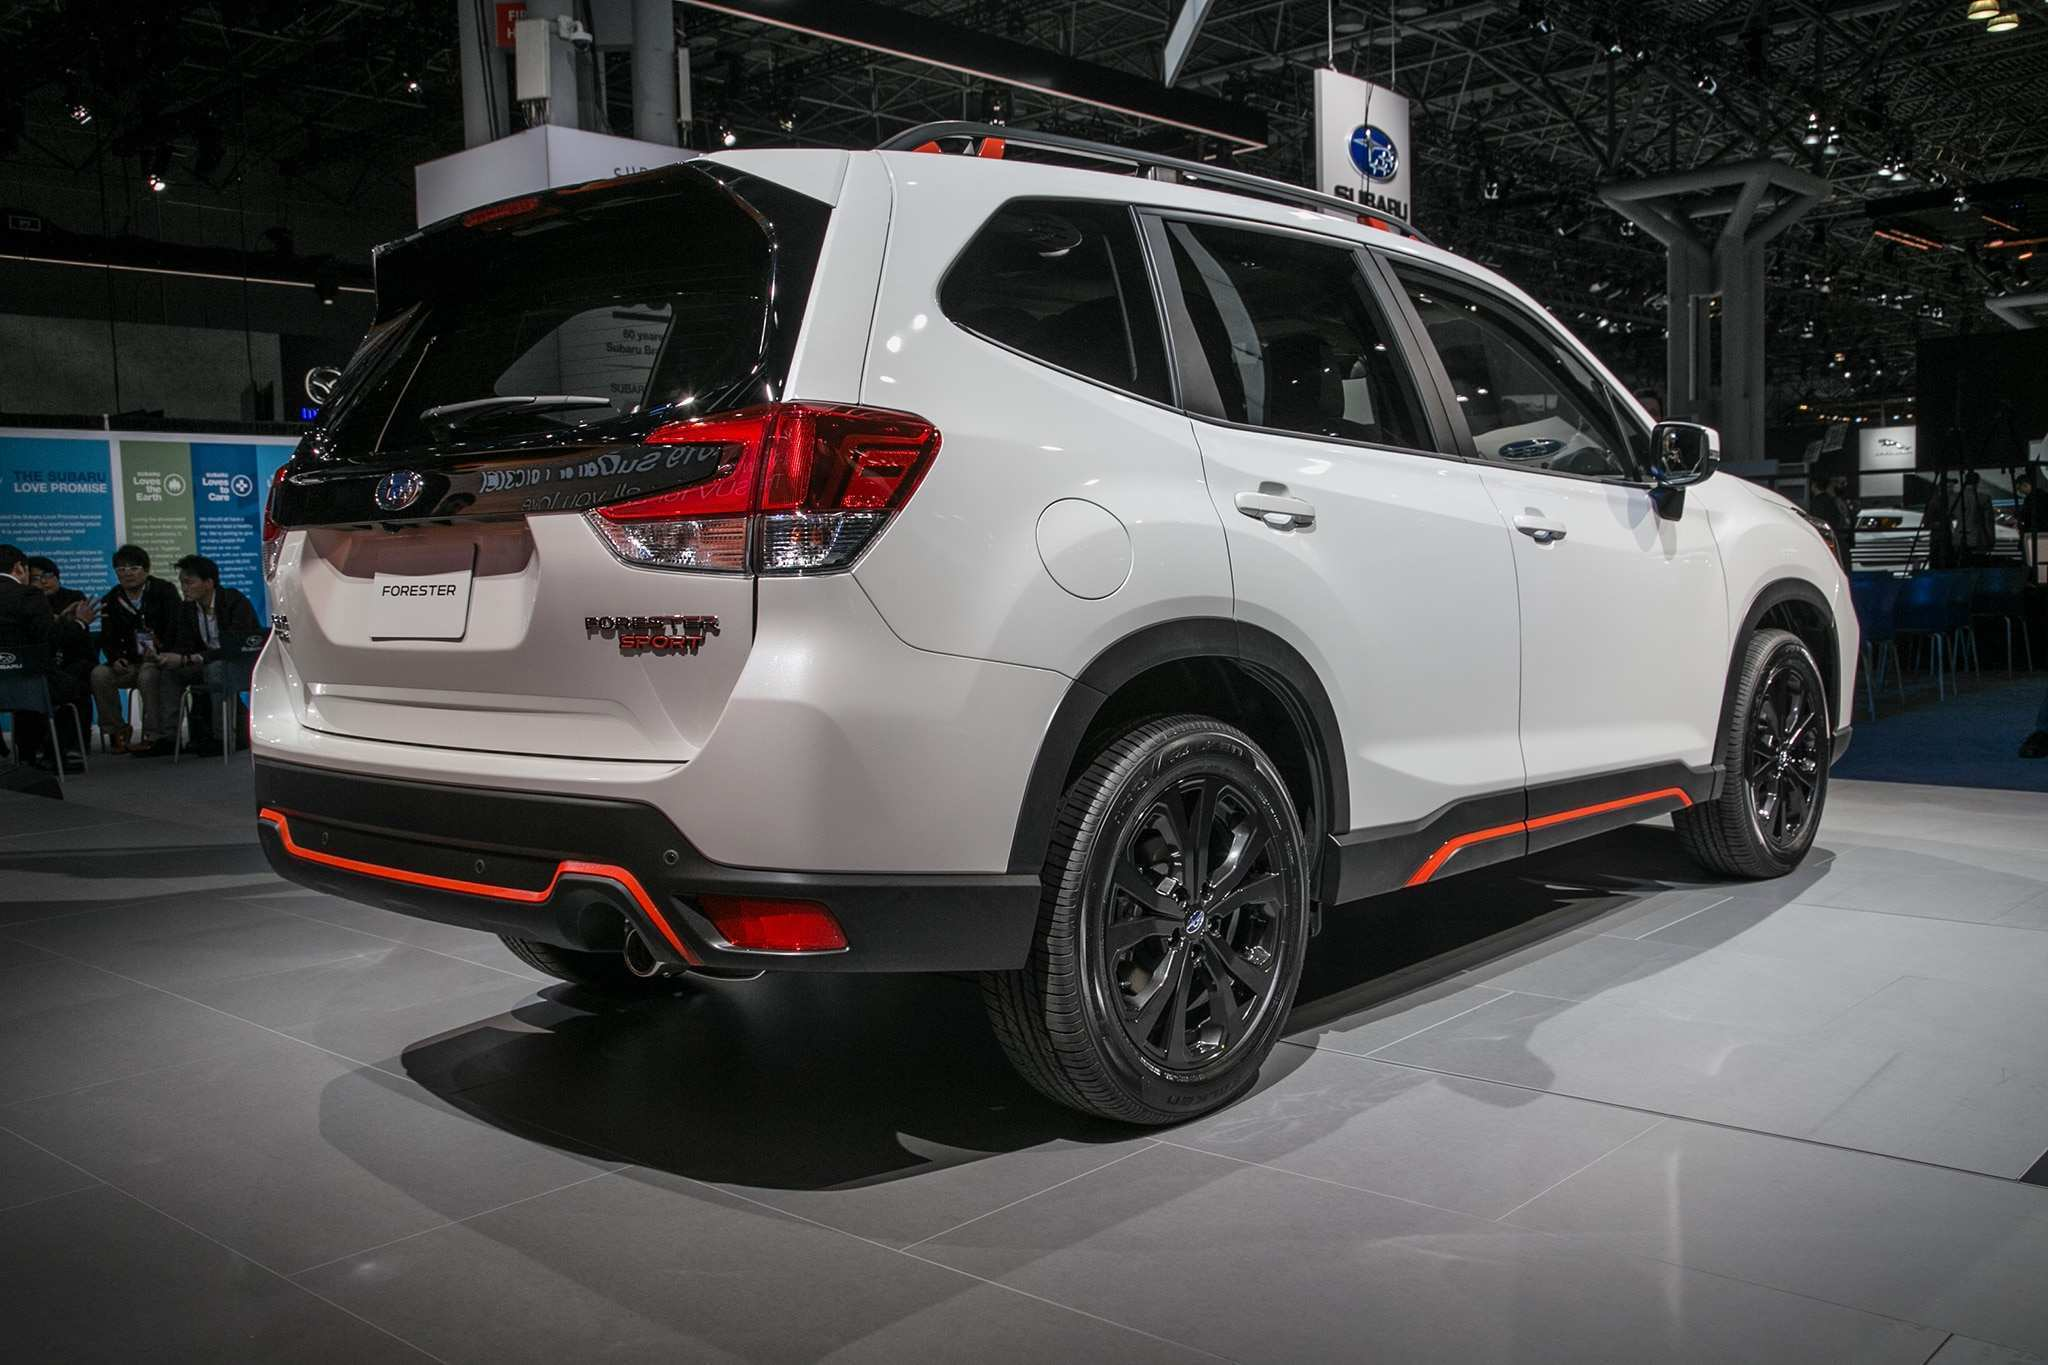 88 Great 2019 Subaru Forester Xt Touring Rumors by 2019 Subaru Forester Xt Touring